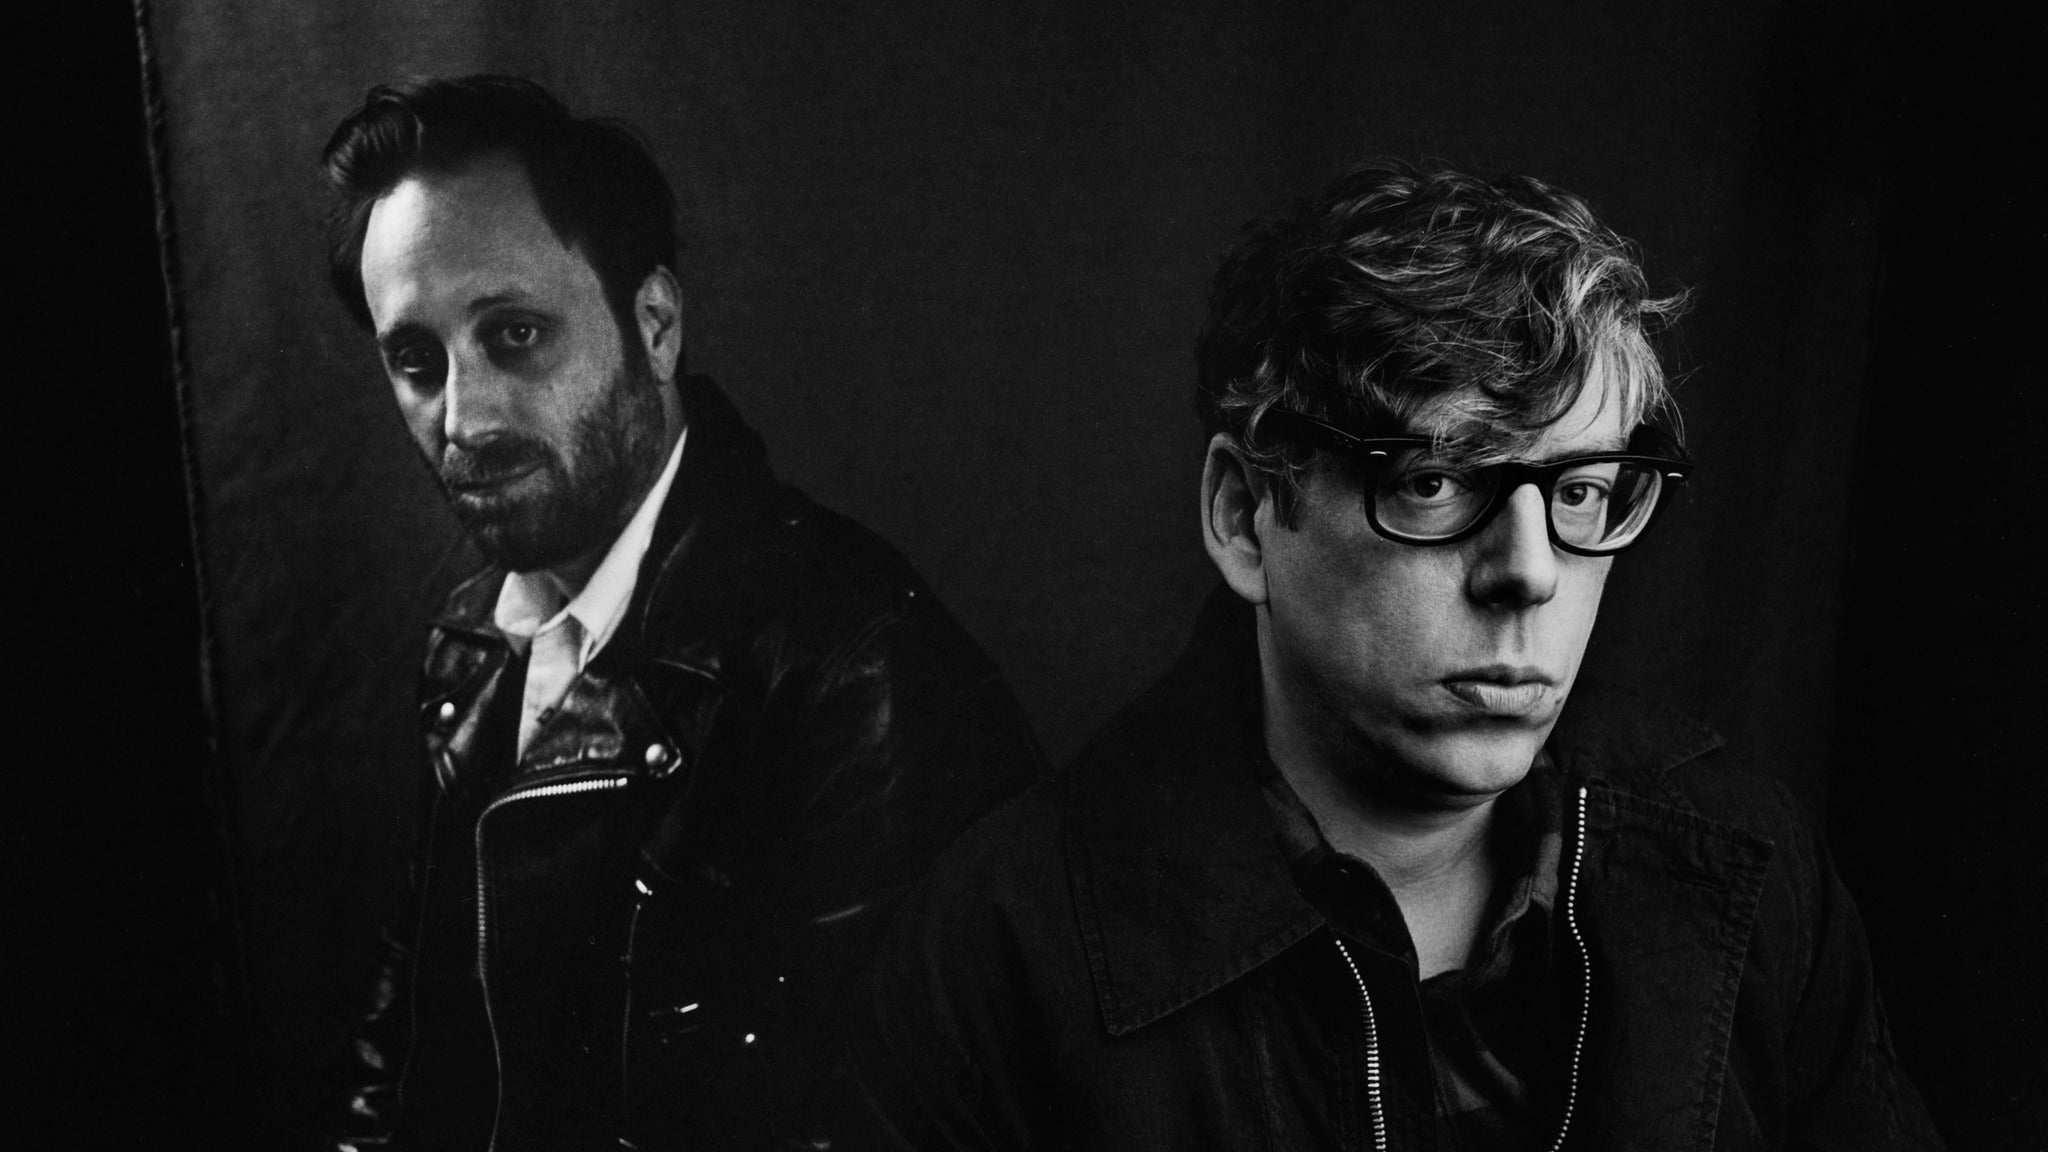 The Black Keys- Let's Rock Tour at XFINITY Theatre